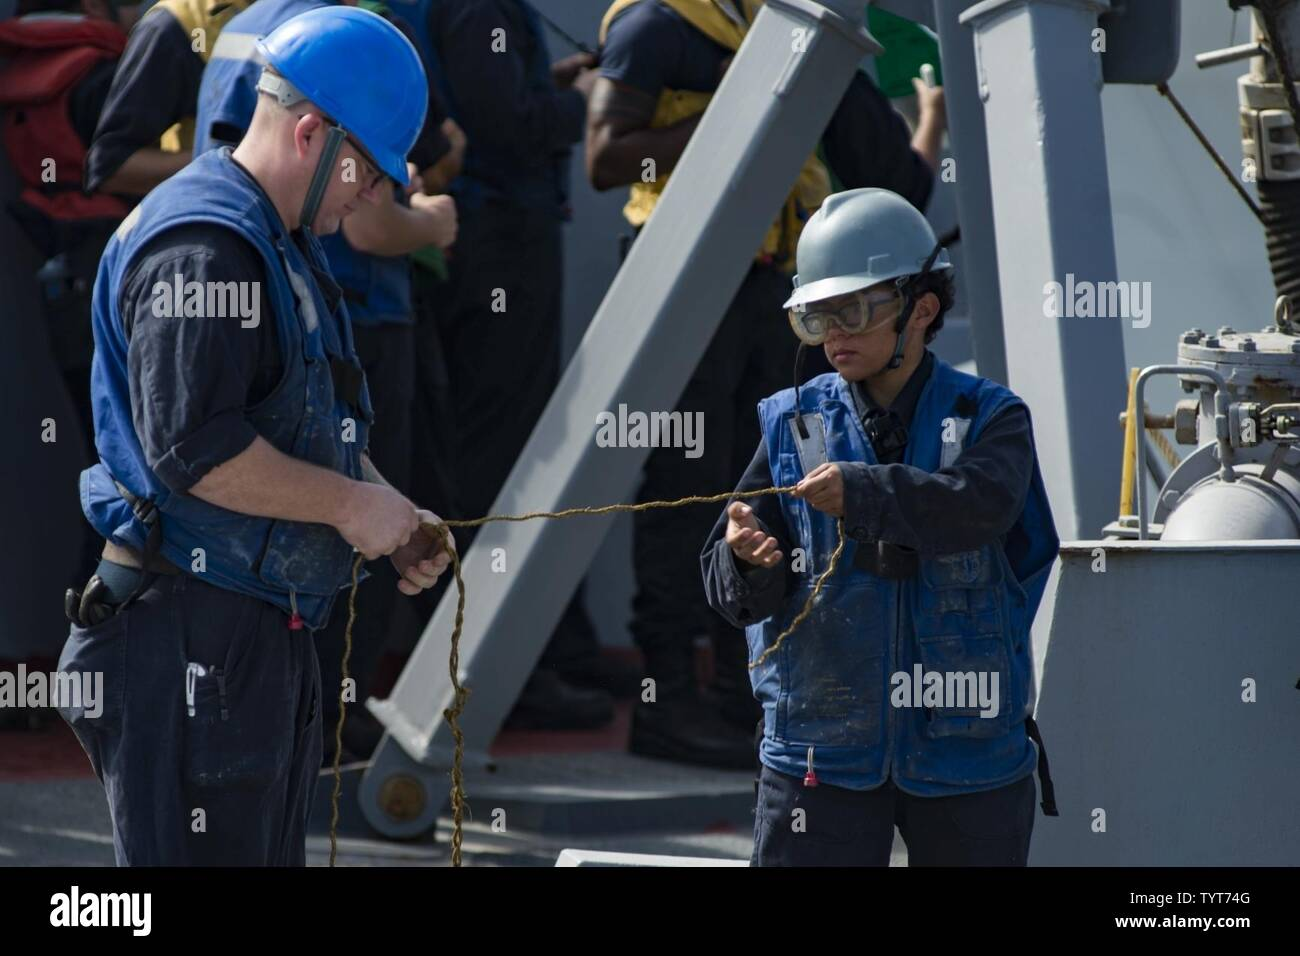 SEA (Nov. 25, 2016) Petty Officer 1st Class James Norskow, left, and Seaman Vanessa Verges, assigned to the guided-missile destroyer USS Nitze (DDG 94), unravel a line during an underway replenishment with the dry cargo and ammunition ship USNS Alan Shepard (T-AKE 3). Nitze, deployed as part of the Eisenhower Carrier Strike Group, is supporting maritime security operations and theater security cooperation efforts in the U.S. 5th Fleet area of operations. - Stock Image